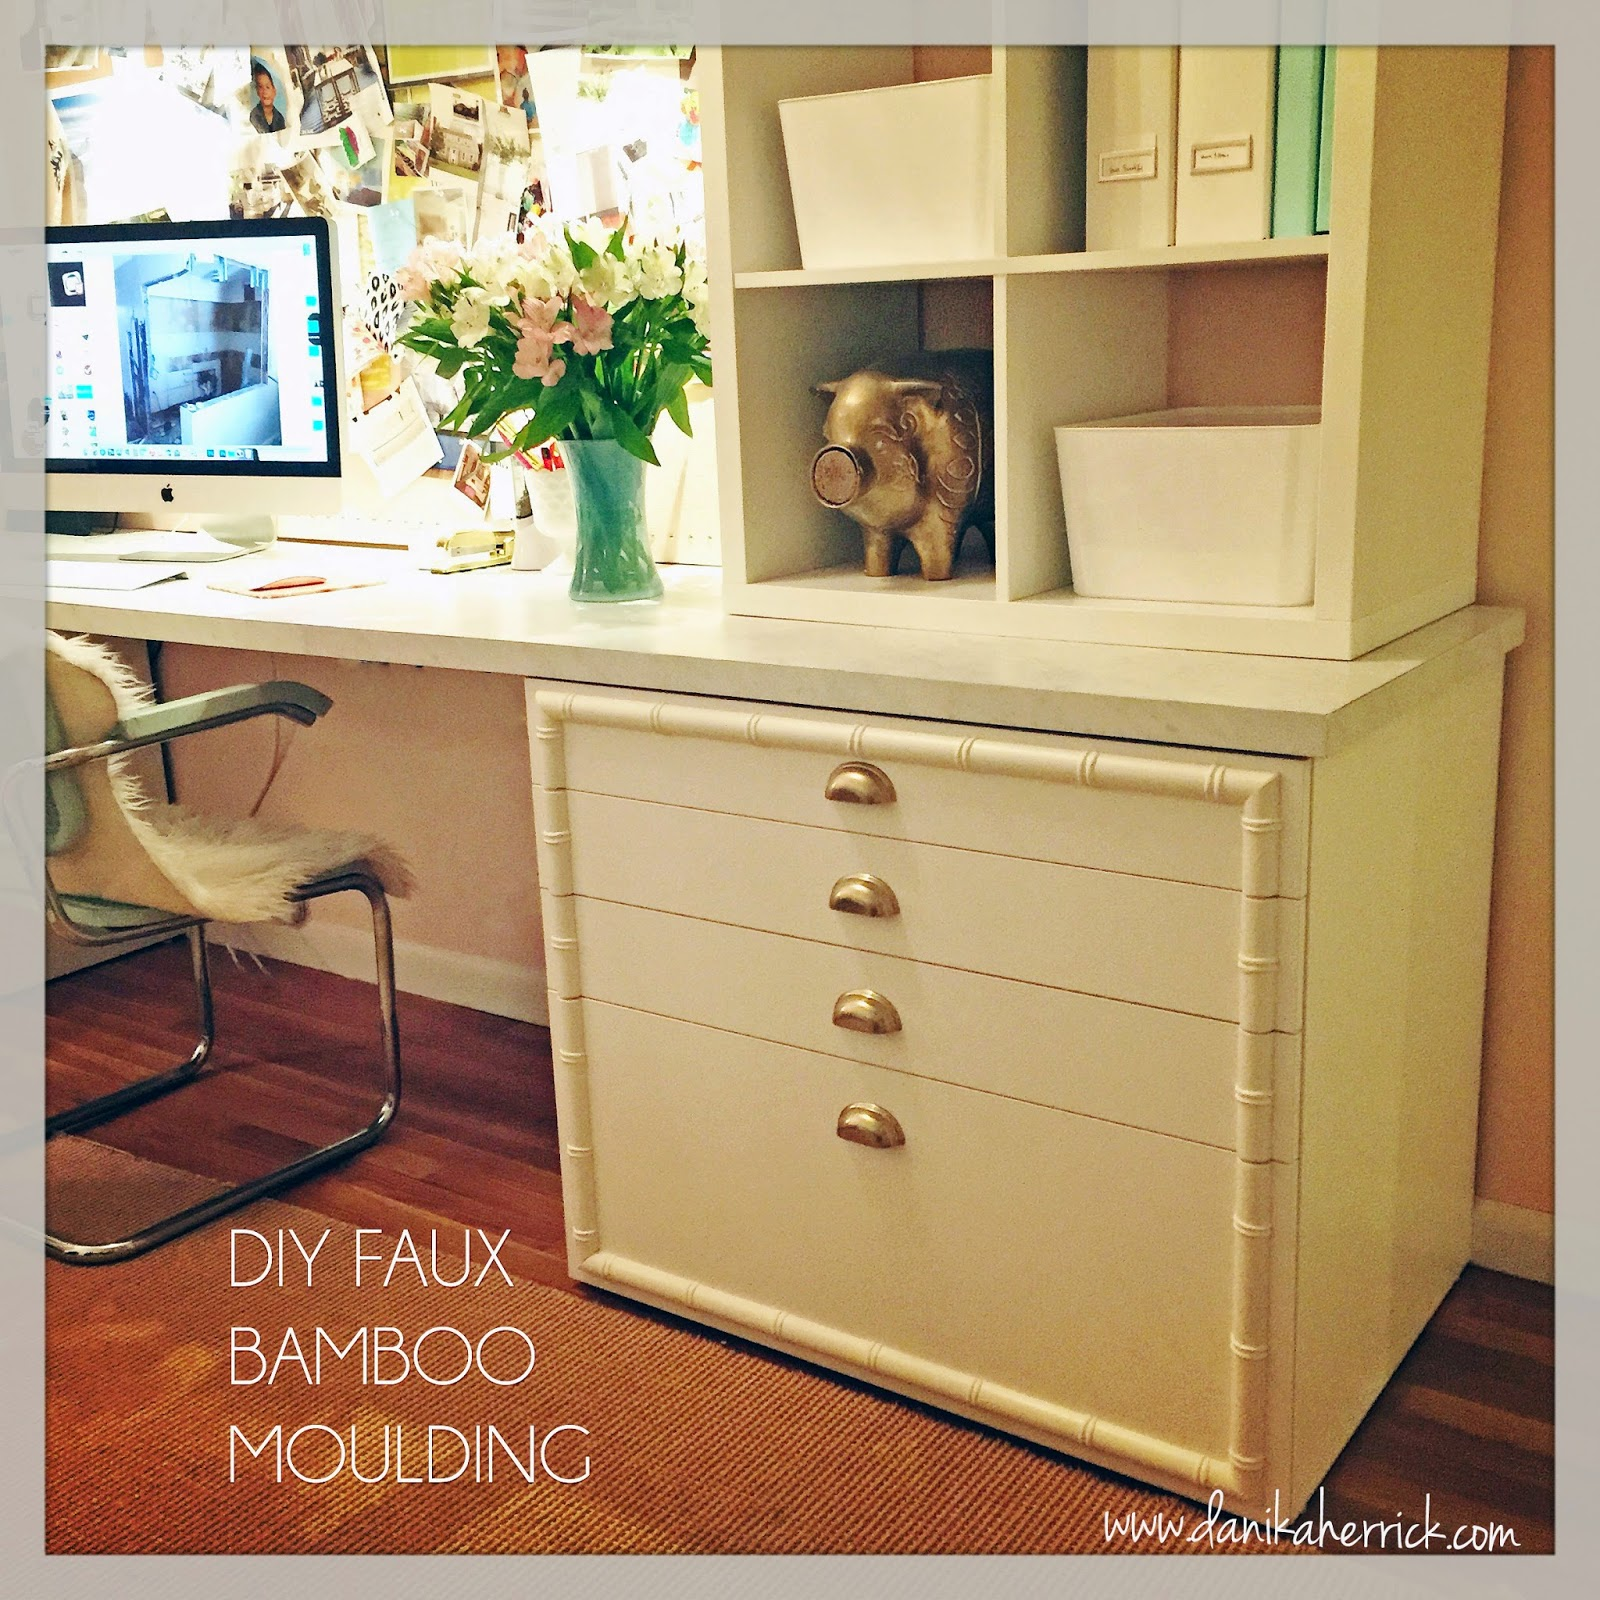 Gorgeous Shiny Things Diy Faux Bamboo Moulding